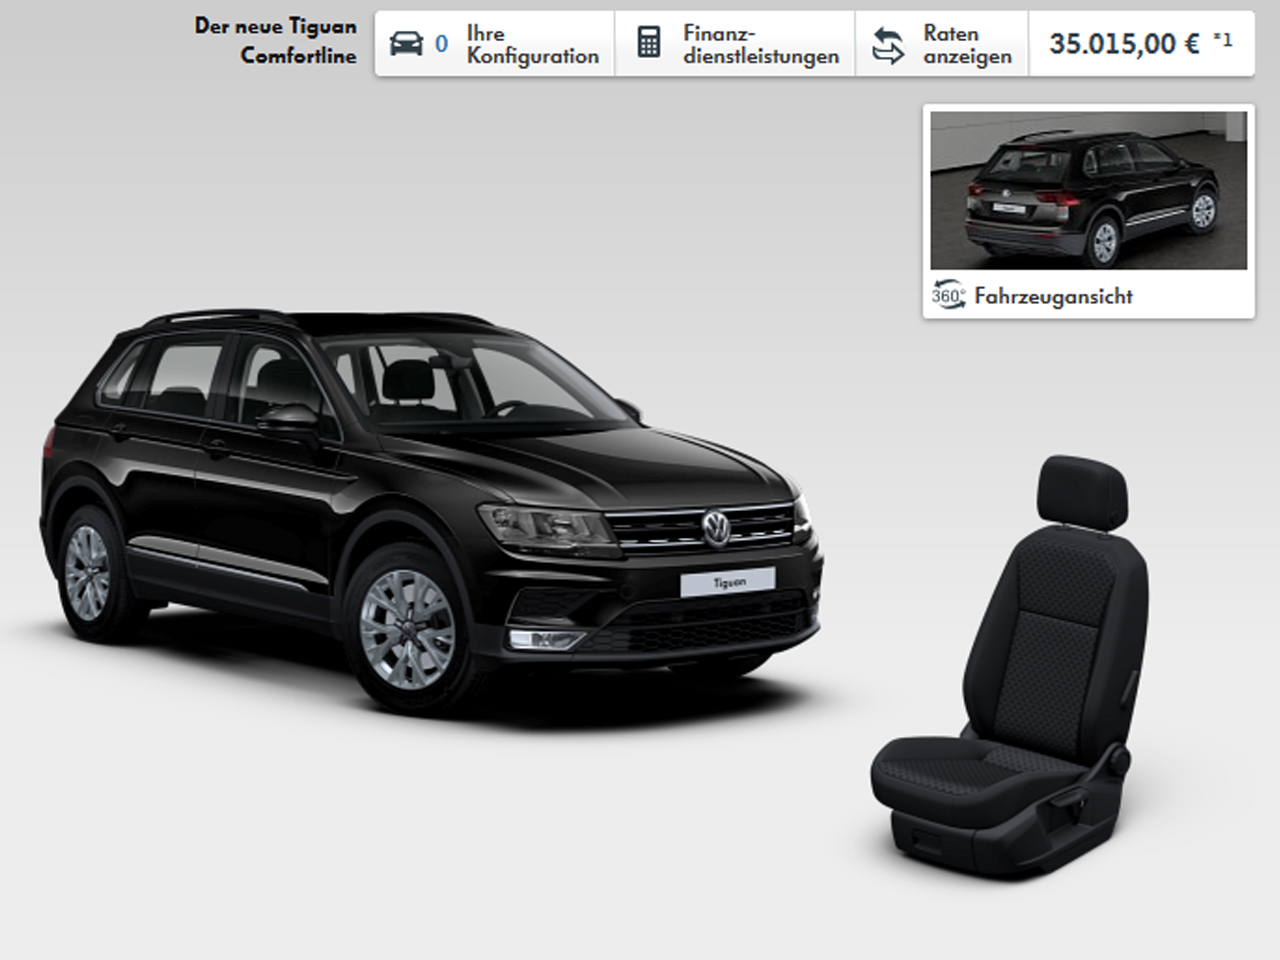 volkswagen tiguan 2016 fiches techniques configurateur et prix photo 2 l 39 argus. Black Bedroom Furniture Sets. Home Design Ideas